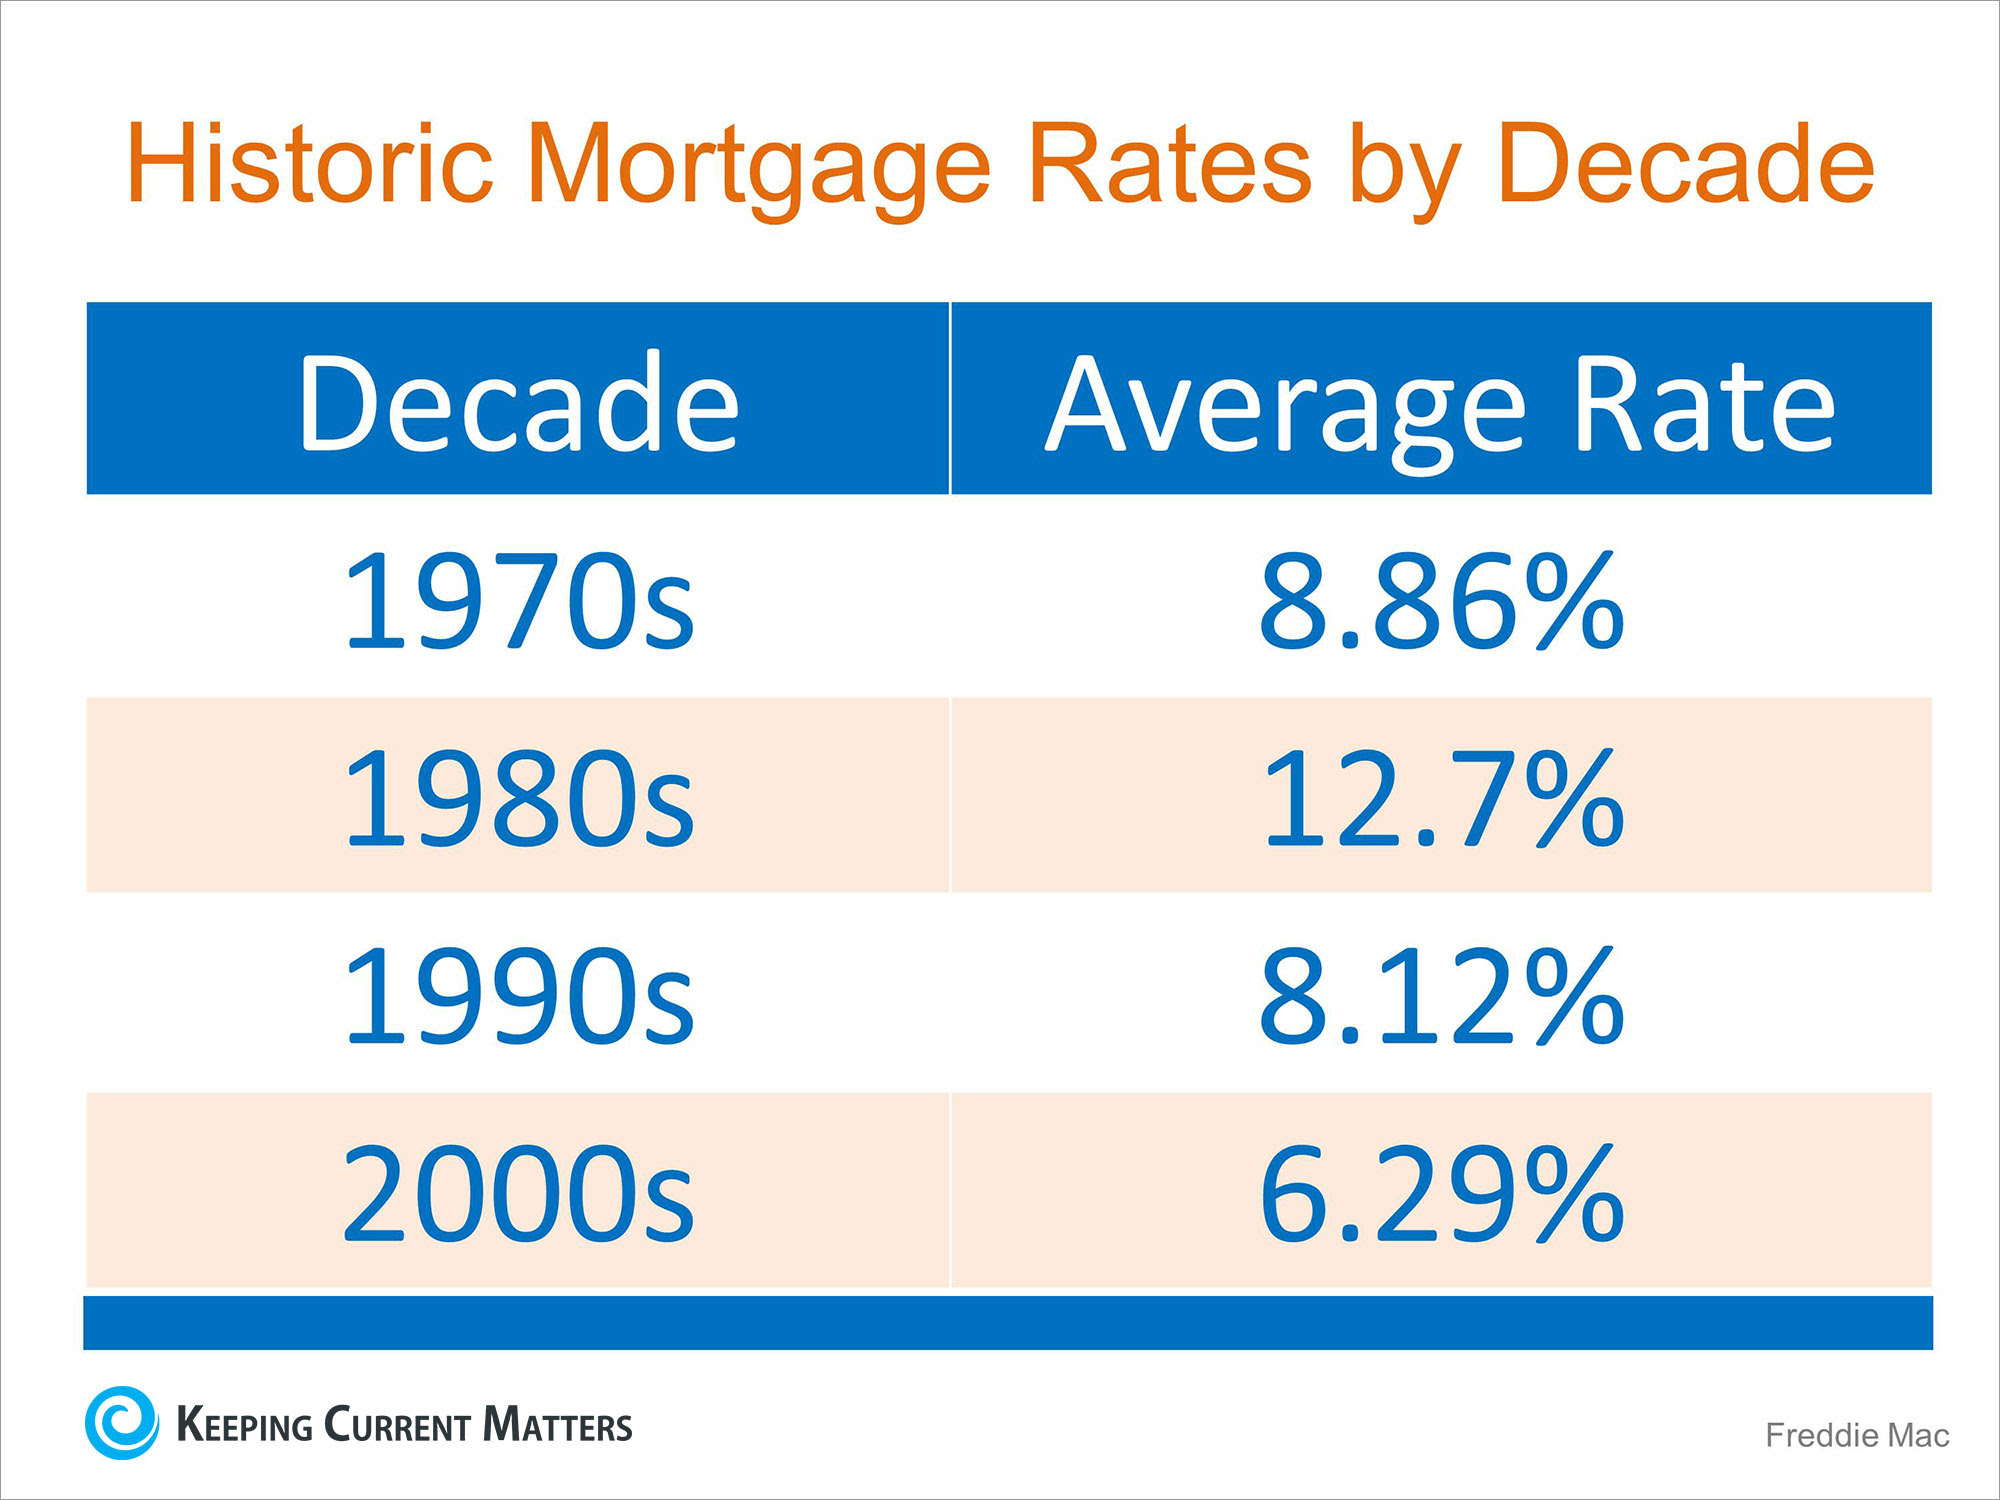 Mortgage Interest Rates Just Went Up... Should I Wait to Buy? | Keeping Current Matters